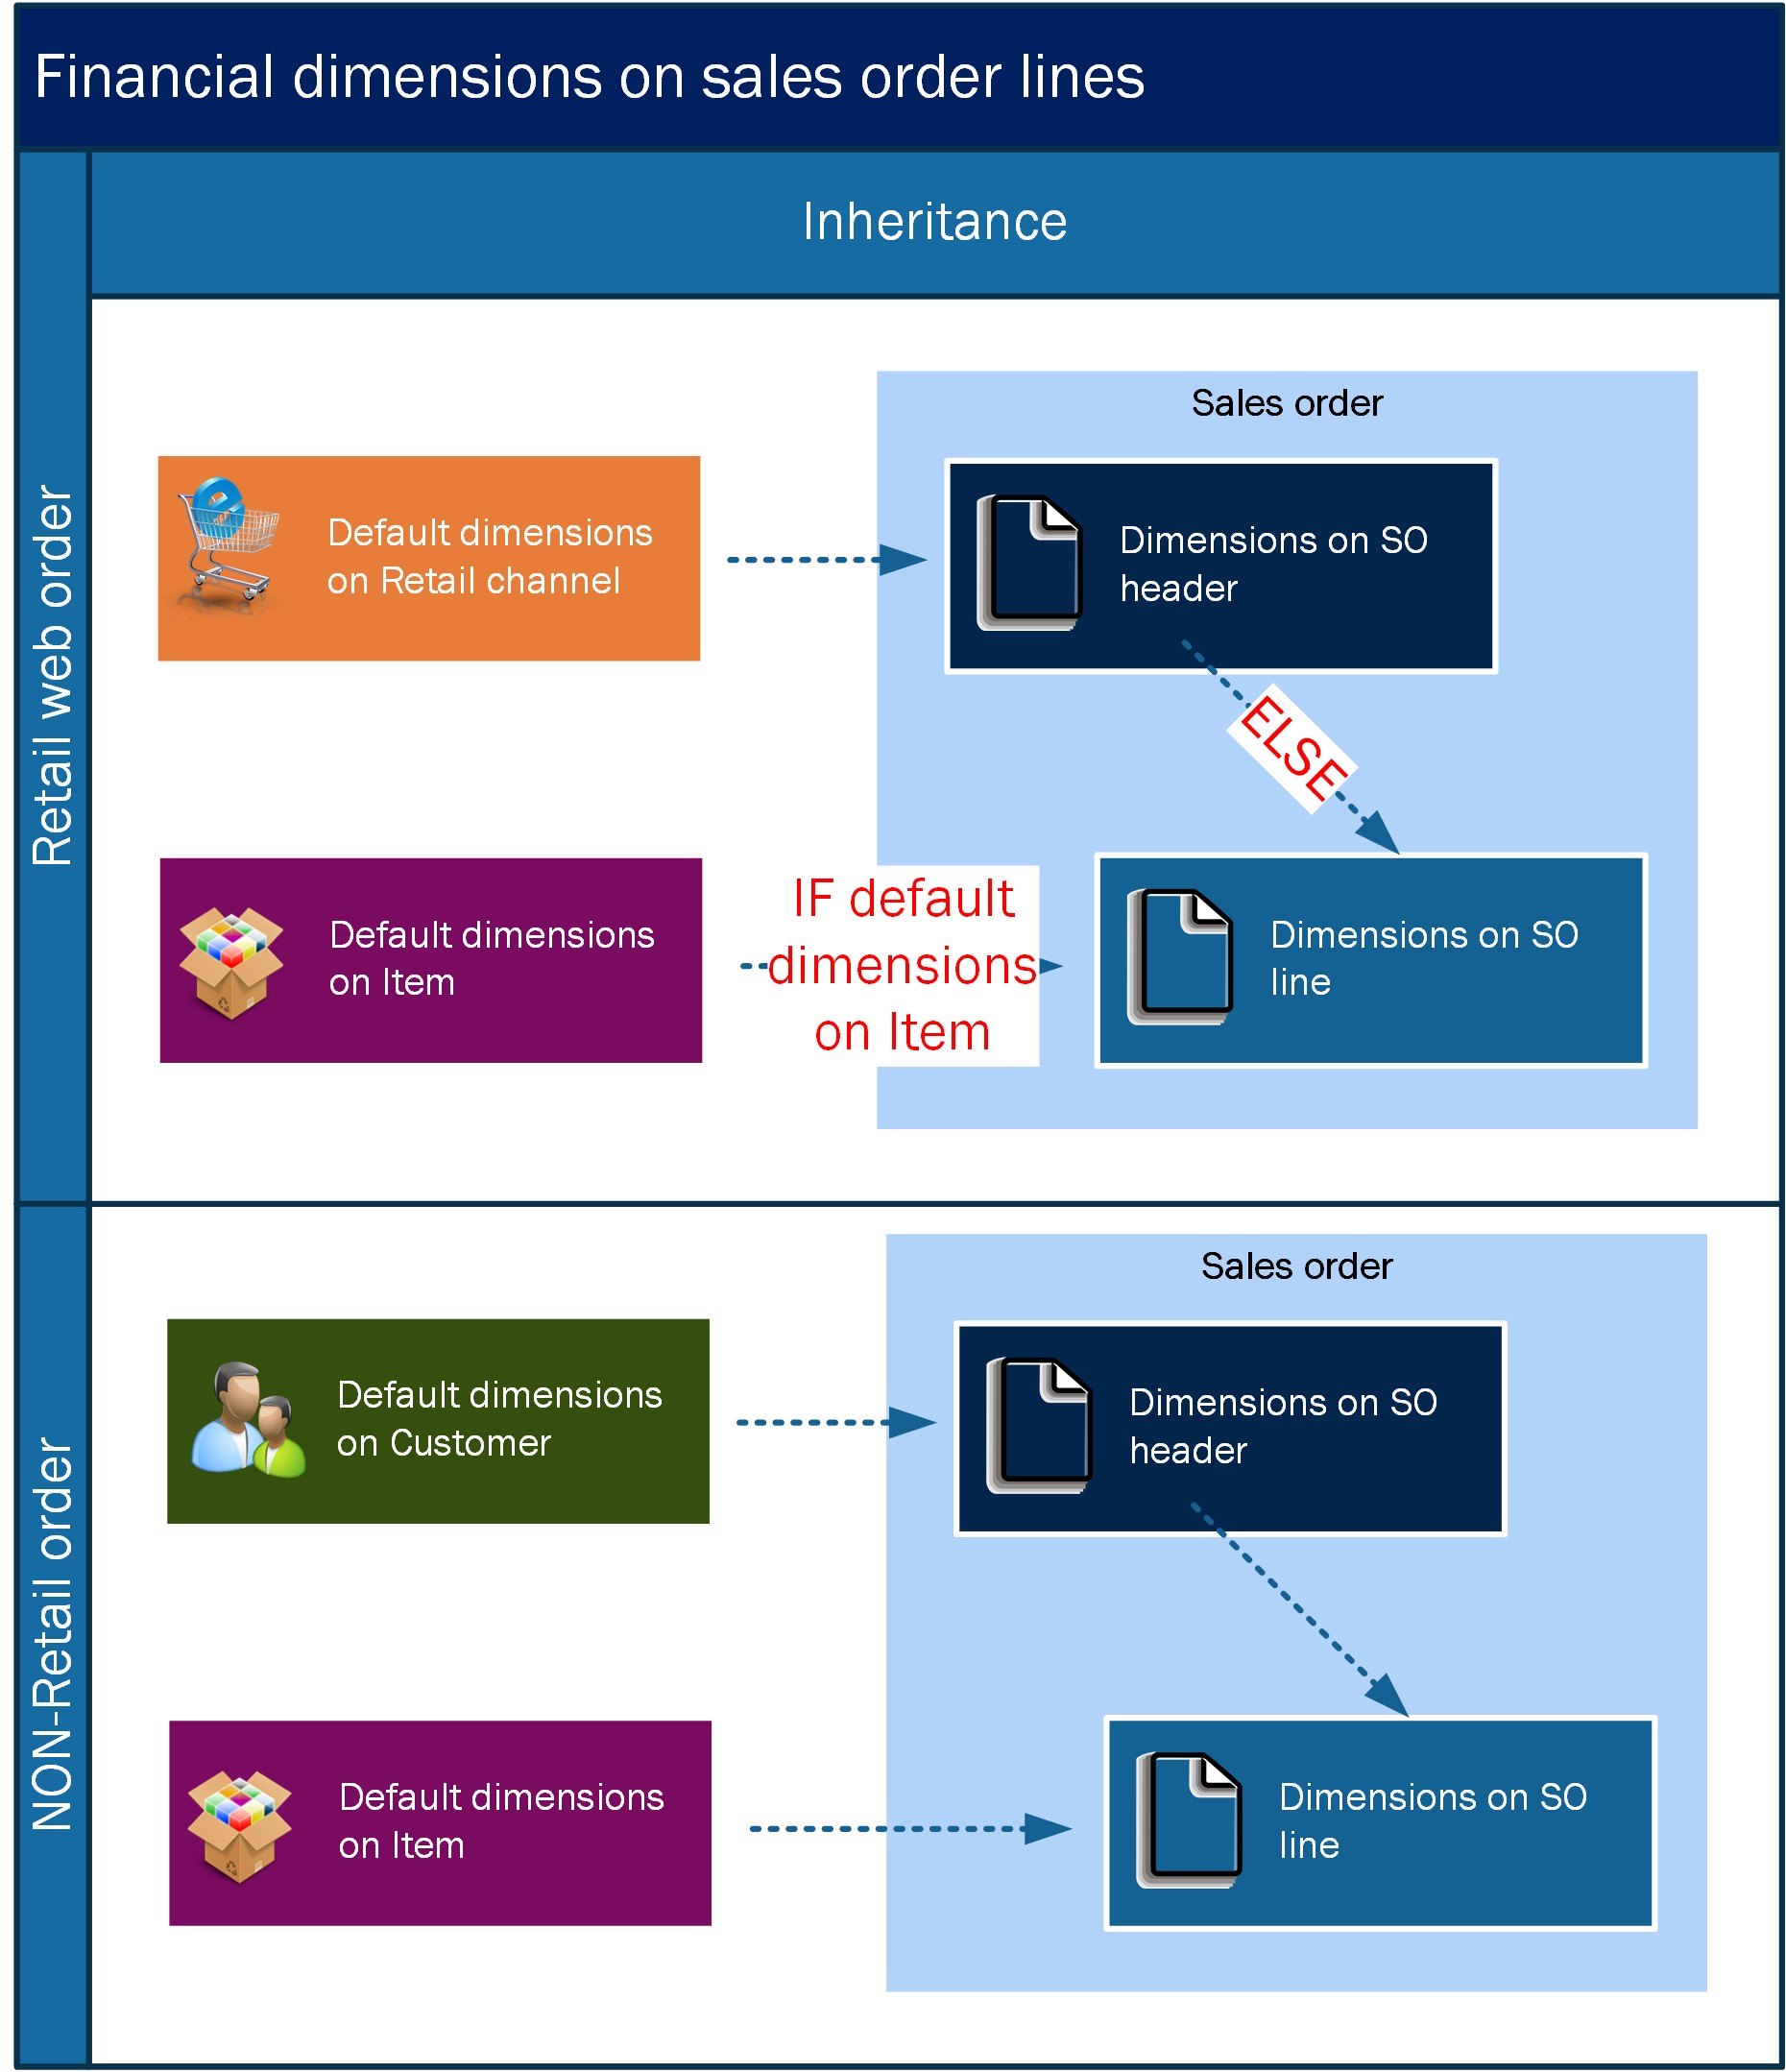 Microsoft Dynamics AX Financial dimension inheritance